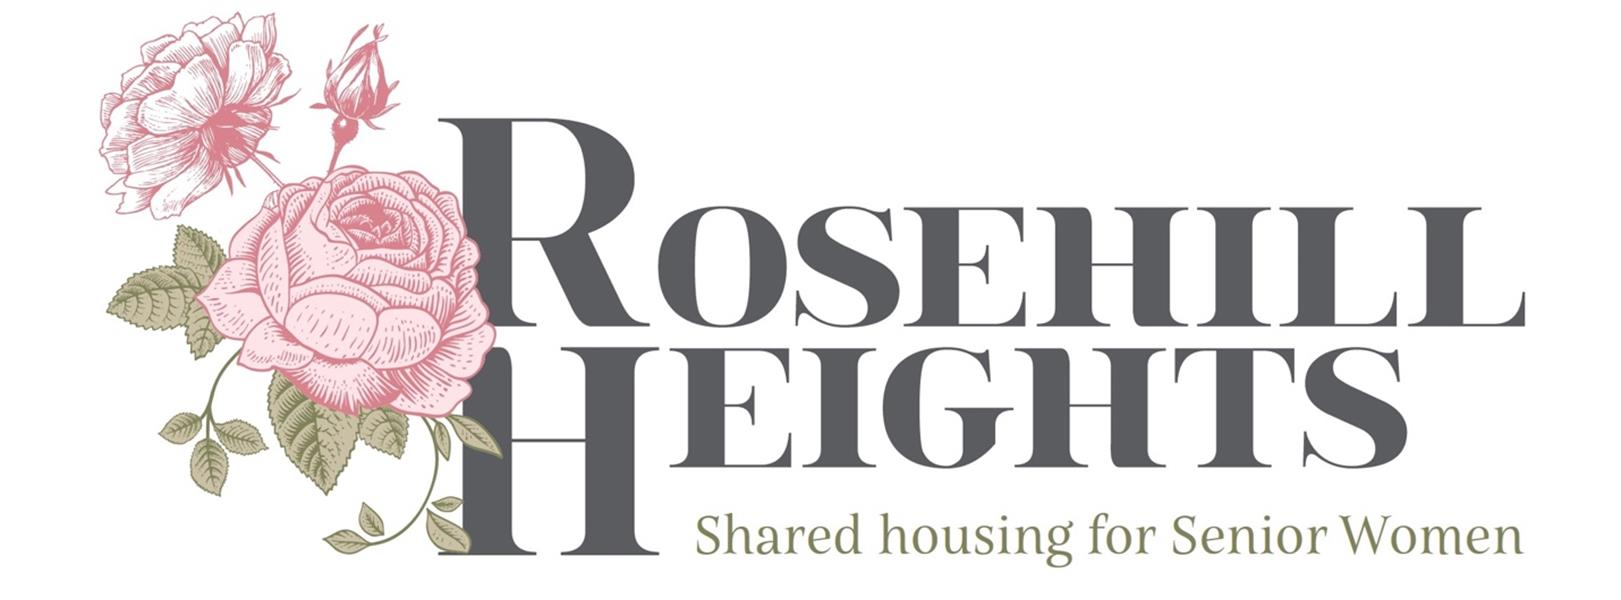 Rosehill Heights, Shared housing for senior women